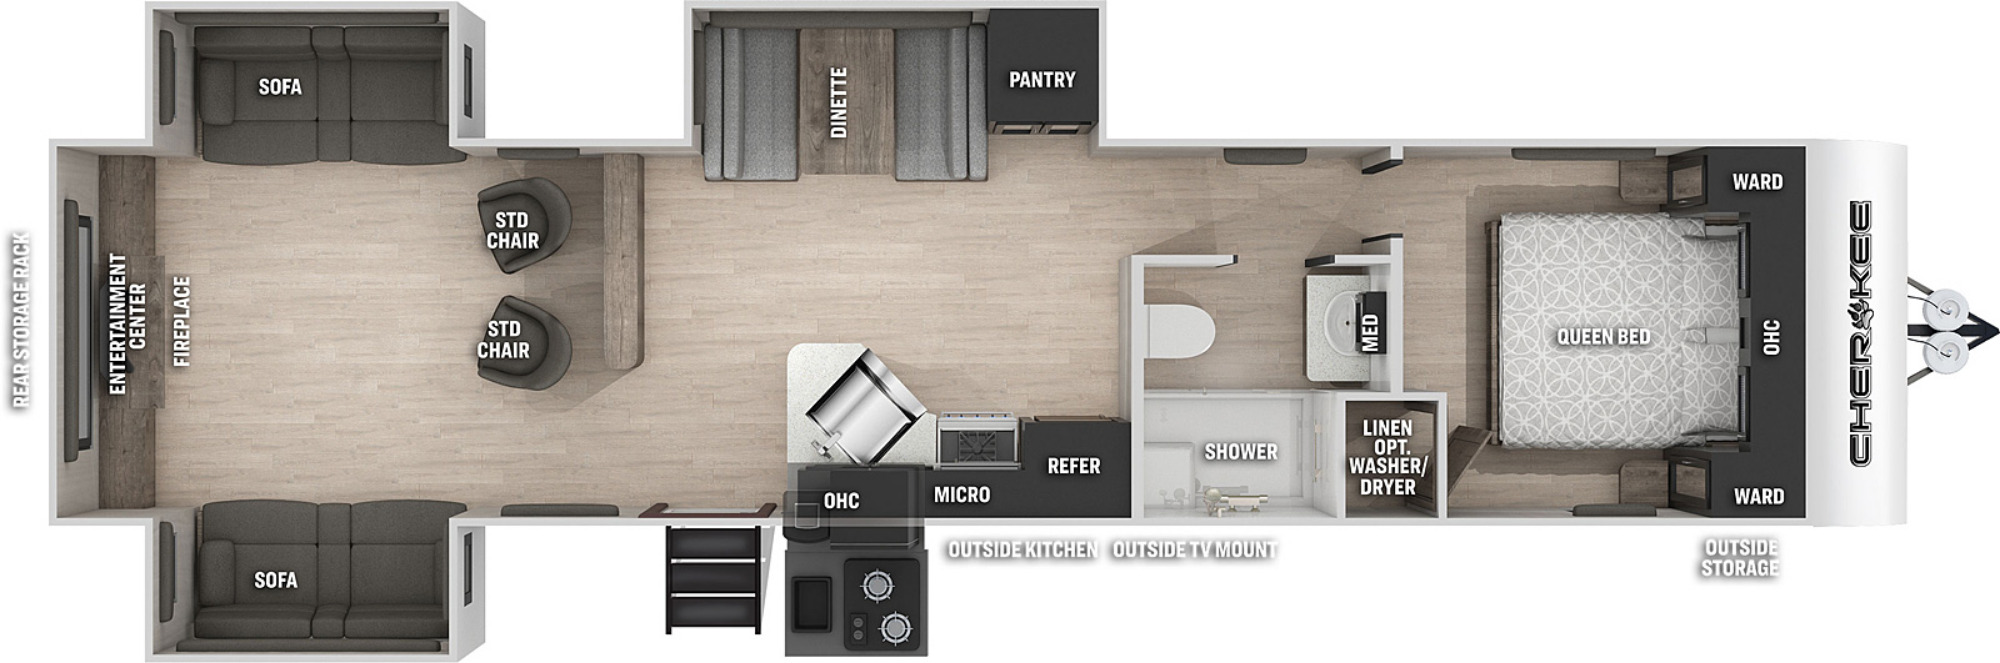 View Floor Plan for 2021 FOREST RIVER CHEROKEE BLACK LABEL 306MMBL